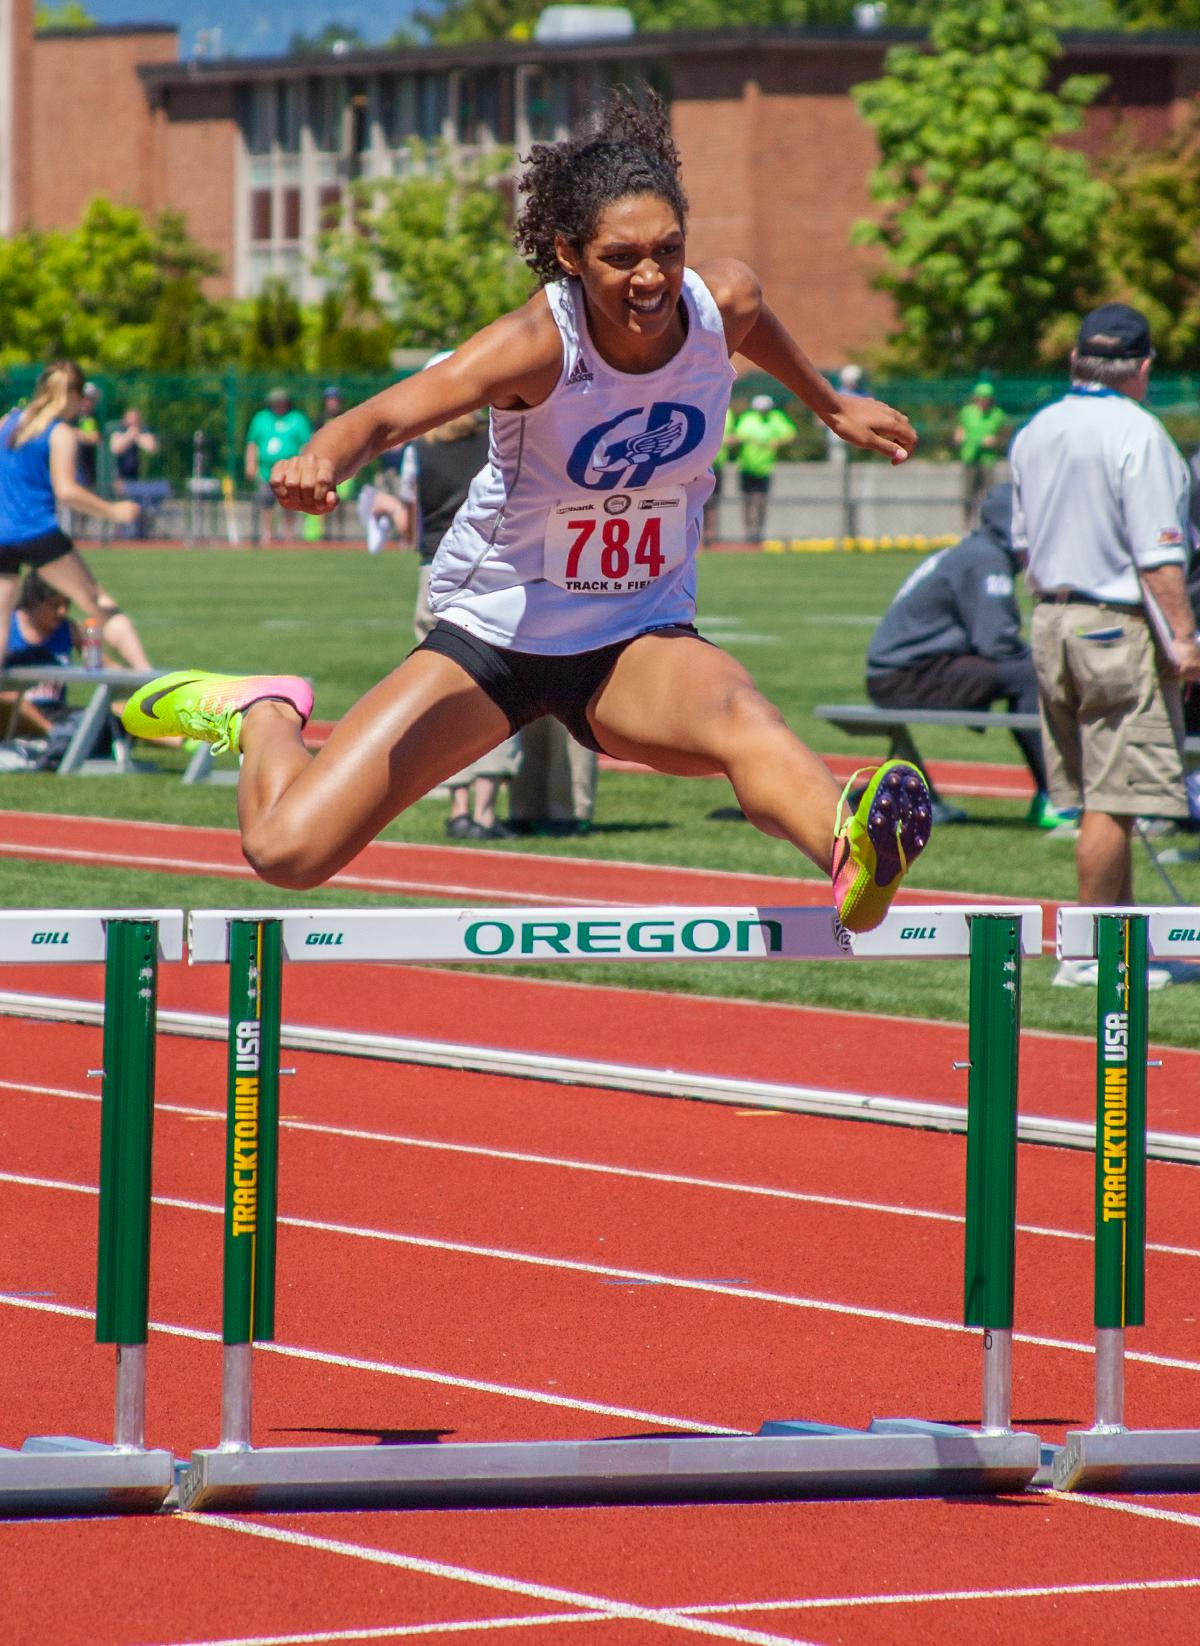 Deshae Wise from Grants Pass High School wins Girls 300 Meter Hurdles 6A Prelims event with the time of 44.05 at the OSAA Track and Field State Championships at Hayward Field. Photo by Vannie Cooper, Oregon News Lab